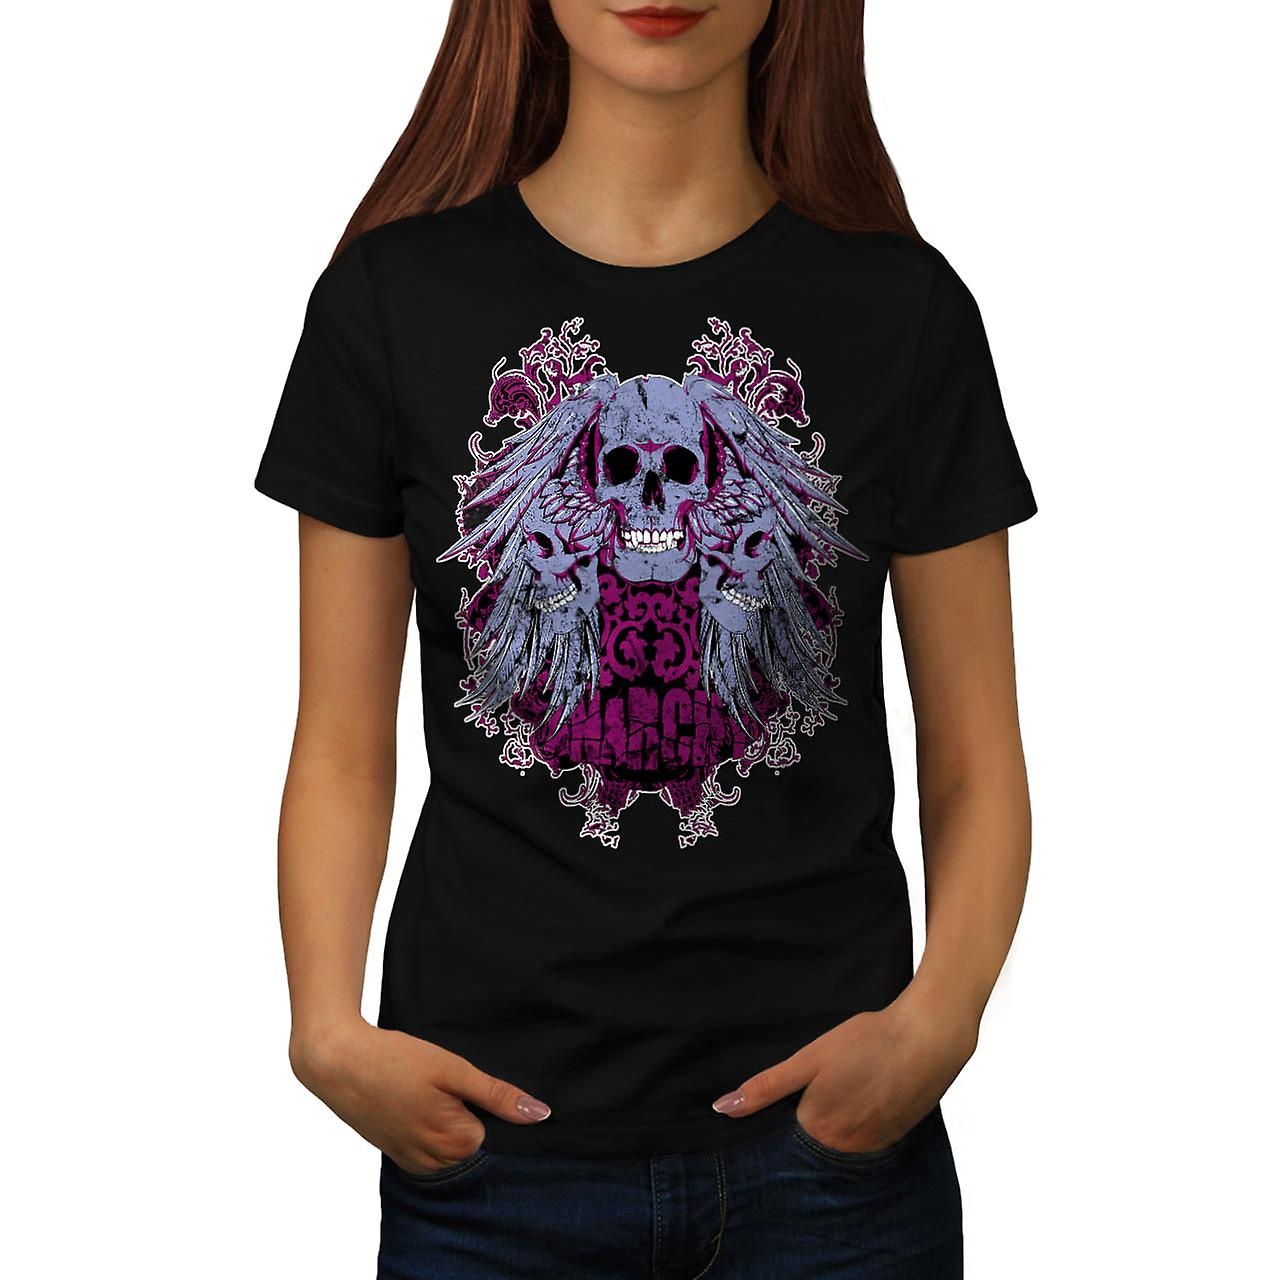 Anarchie Ghost Team crâne diable femmes T-shirt noir | Wellcoda